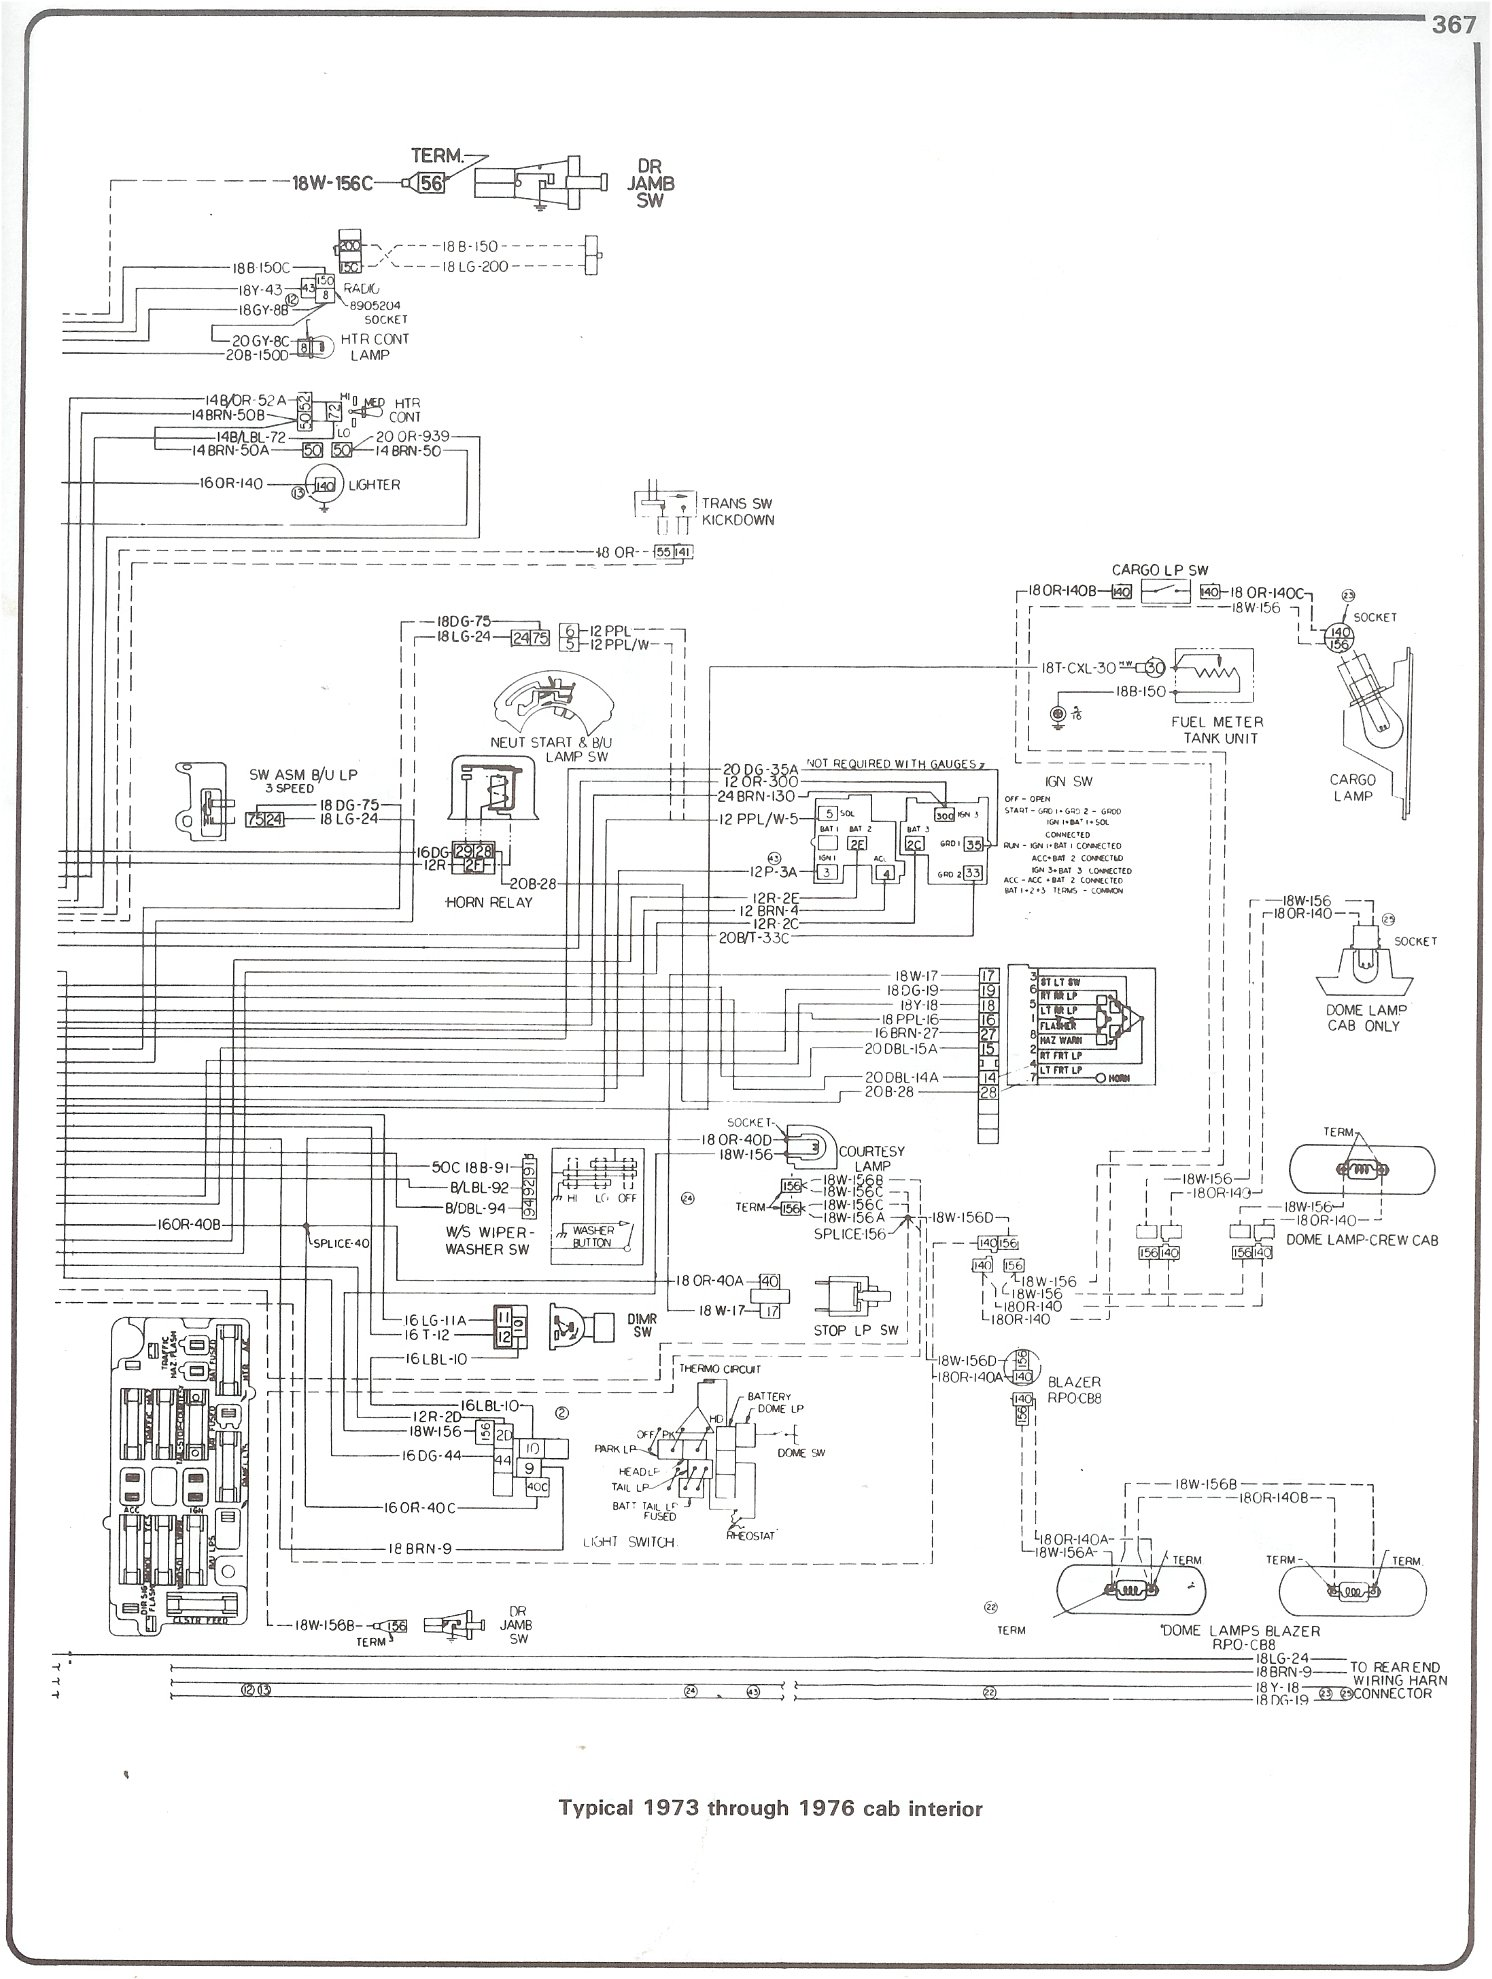 75 chevy caprice wiring diagram schematic wiring library white box chevy caprice 73 76 diagrams 73 76 cab interior